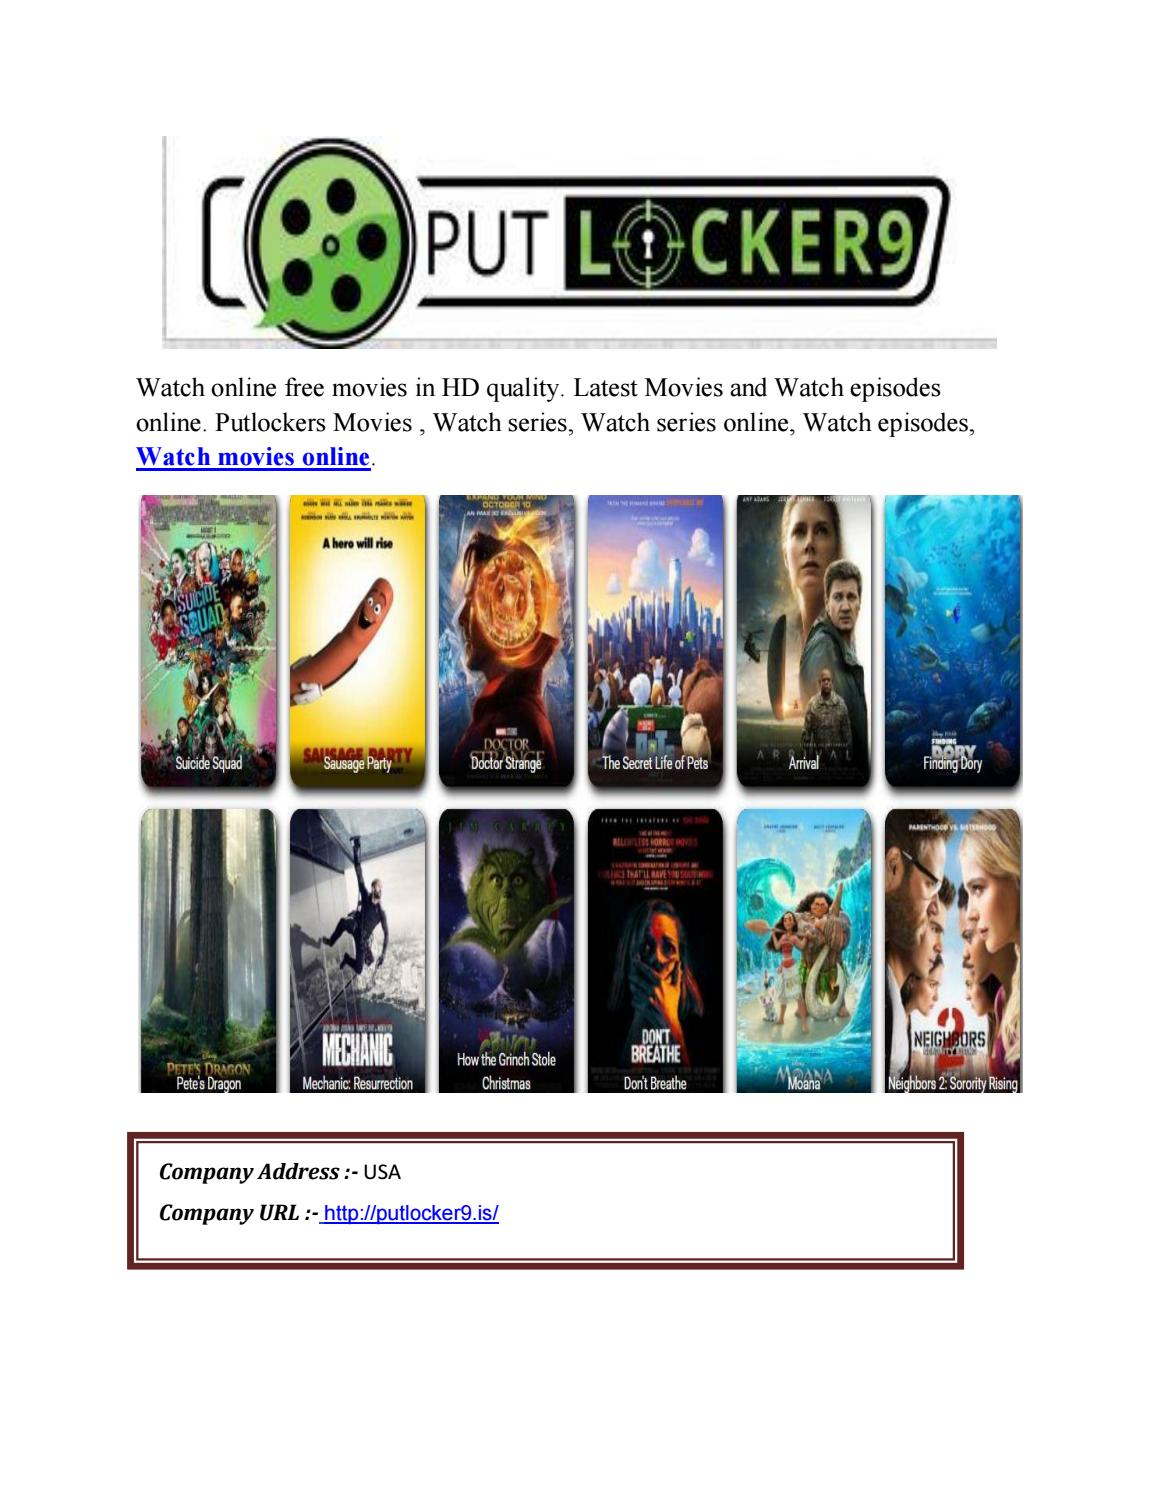 Watch Movies Online on Putlocker - Putlocker9 by restrey kinaya - issuu